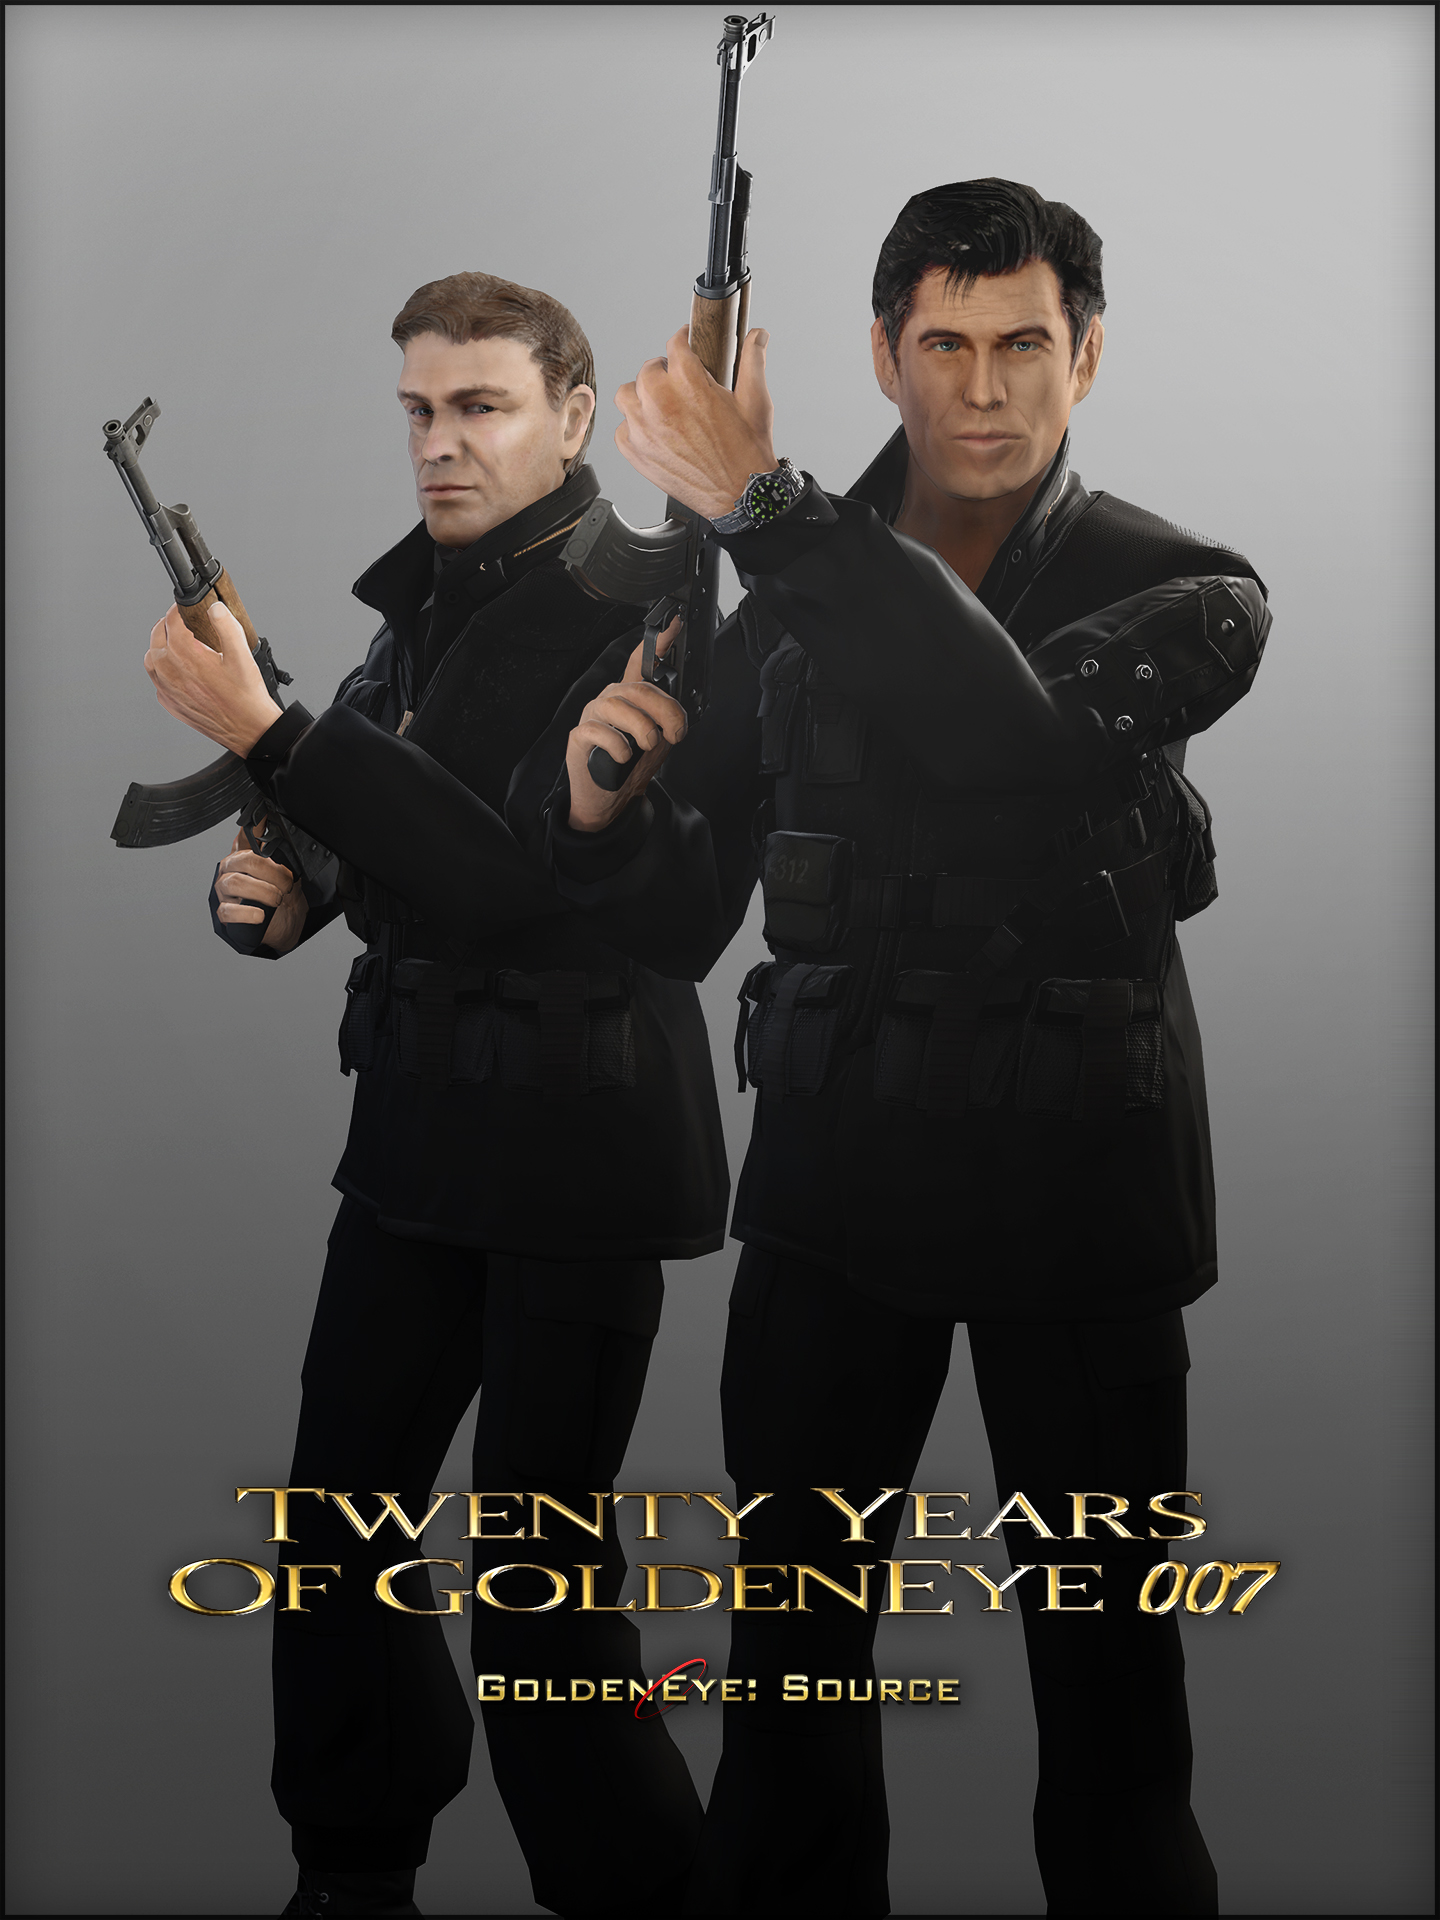 GoldenEye 007 Poster recreation